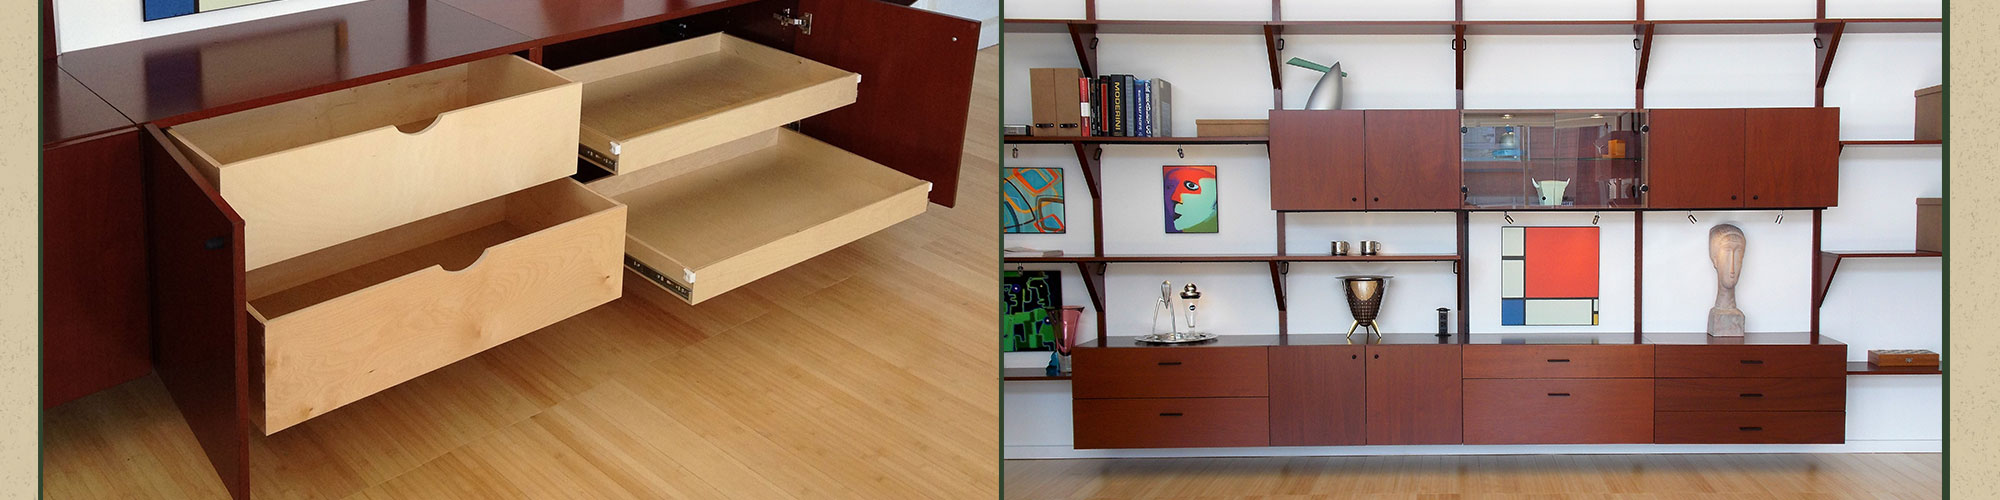 Storage Solutions San Francisco Ca Roll Out Shelves